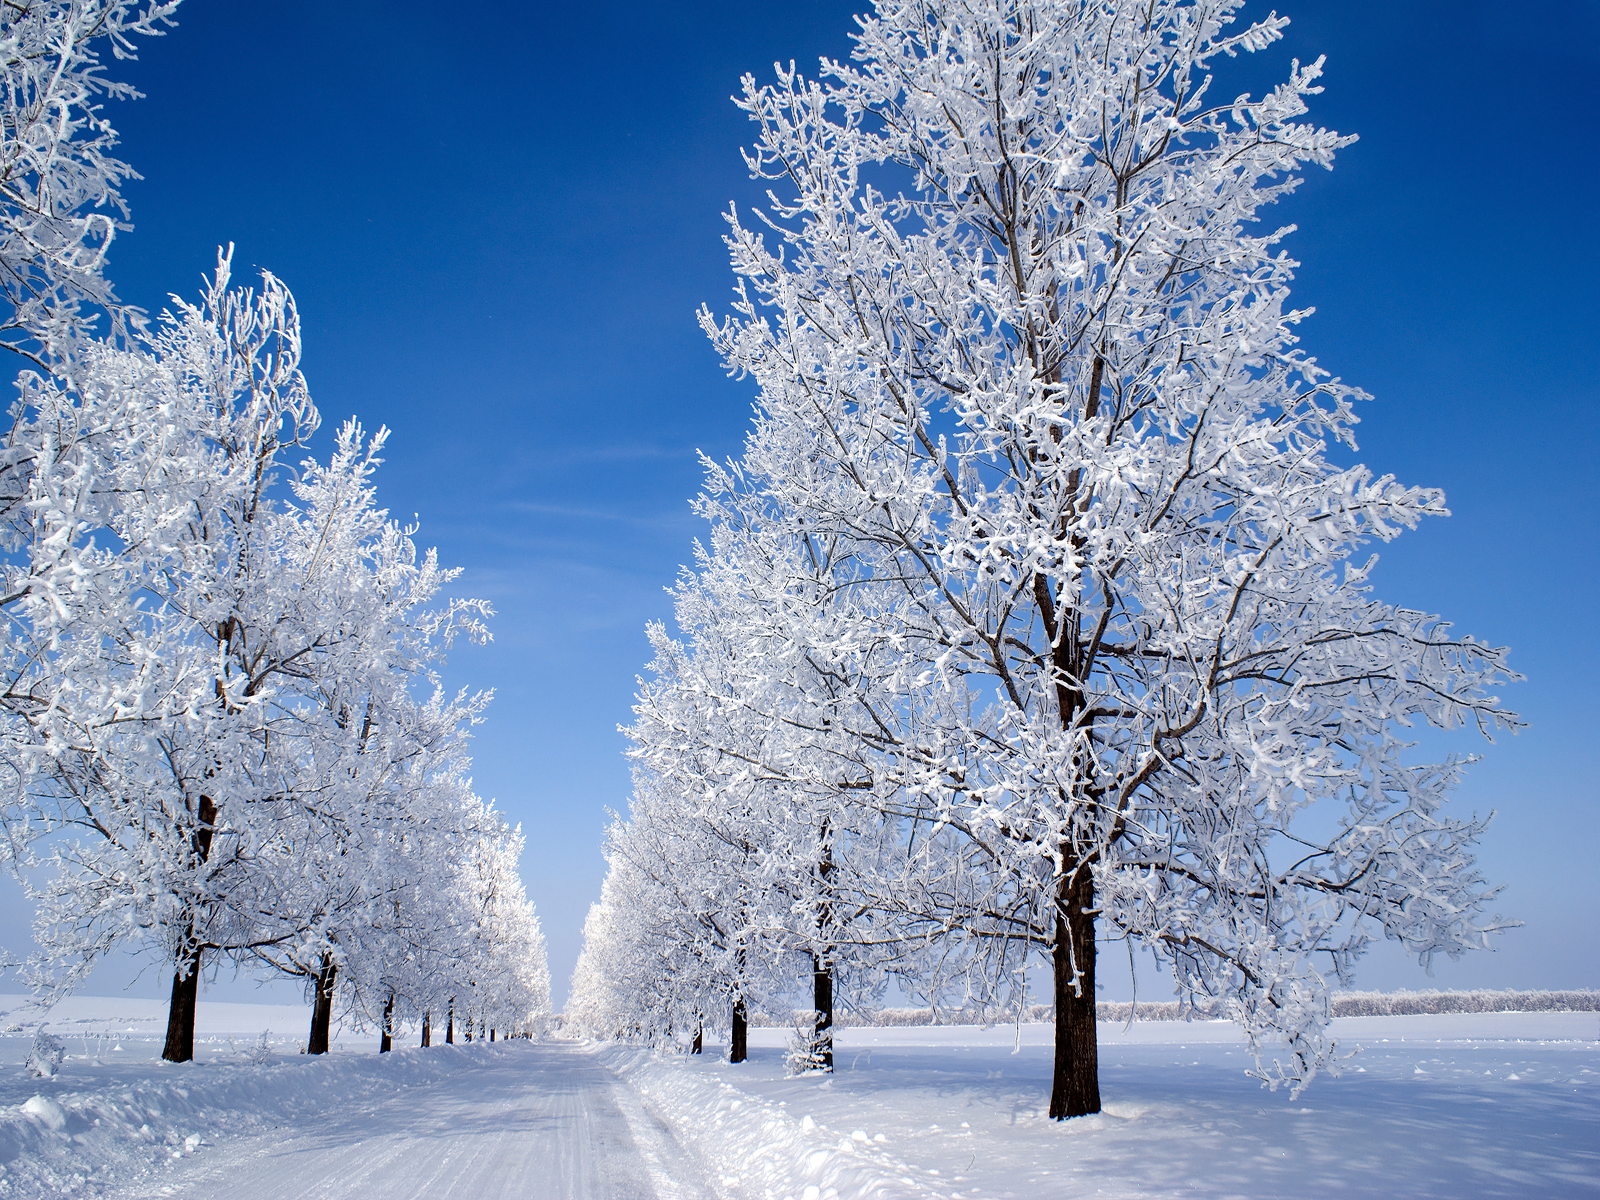 Snow Scenes Natural Beauty Snowfall HD Wallpapers Images Pictures